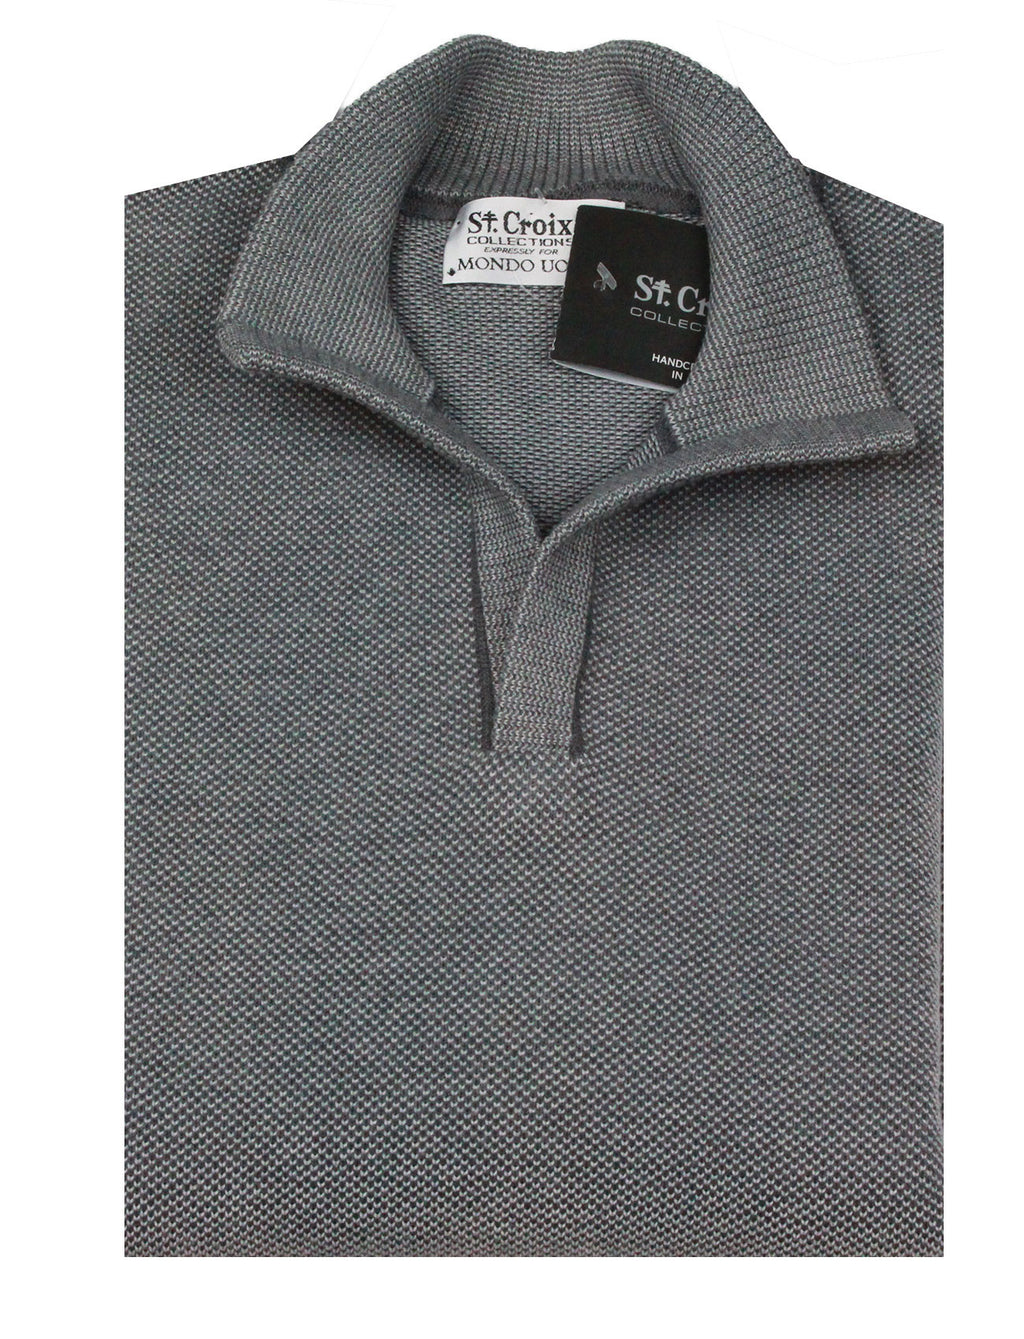 St Croix Sweater Open Mock  Lead Marl